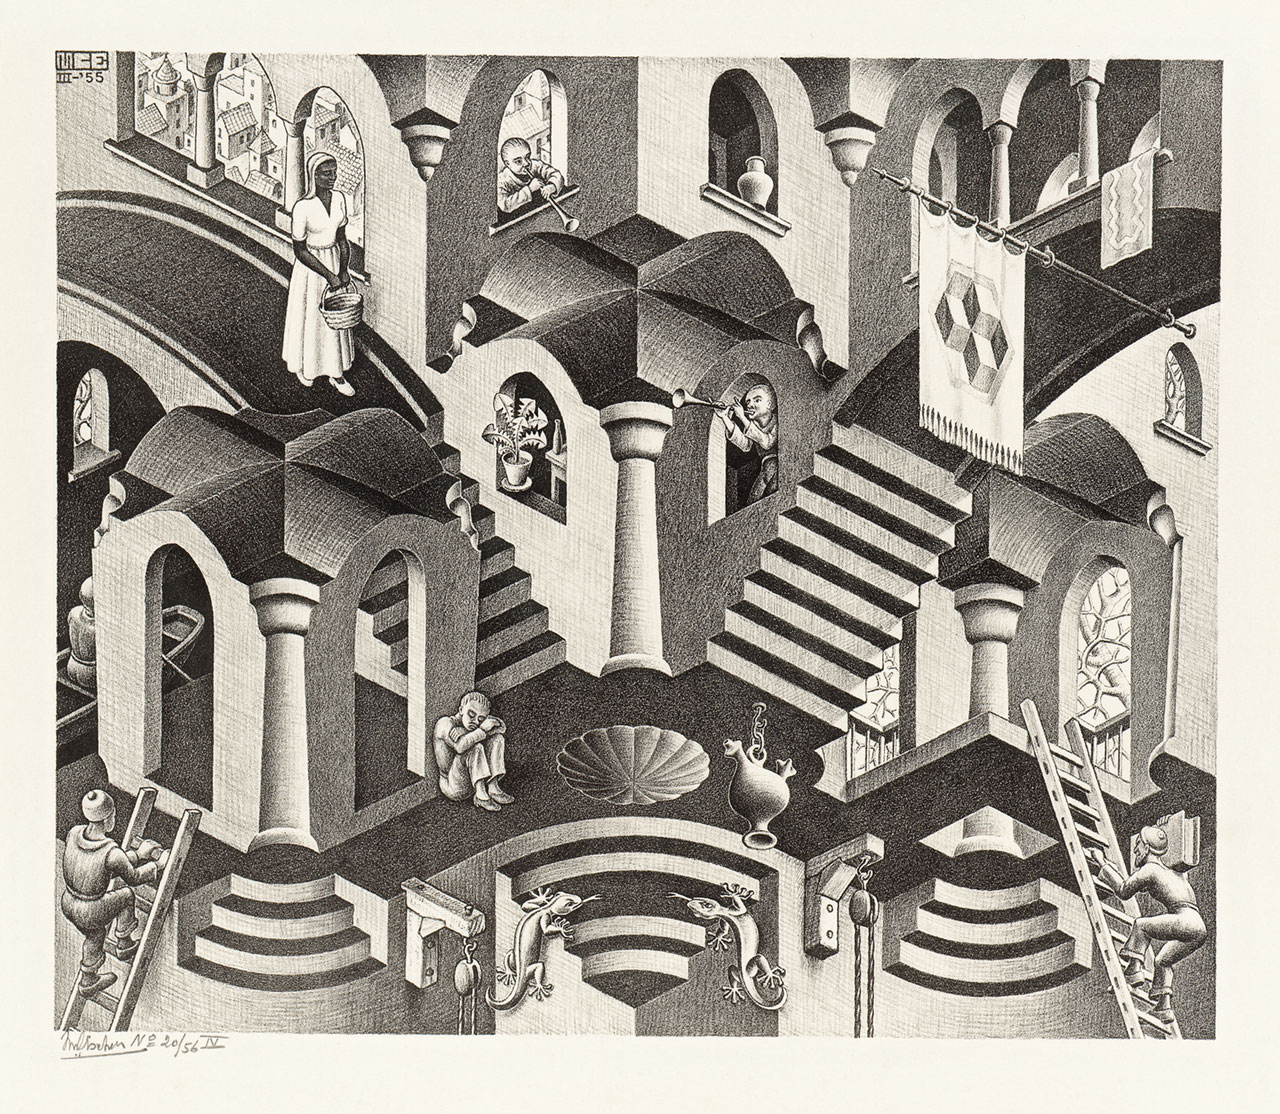 M. C. Escher, Convex and concave, March 1955, lithograph. Escher Collection, Gemeentemuseum Den Haag, The Hague, the Netherlands © The M. C. Escher Company, the Netherlands. All rights reserved.